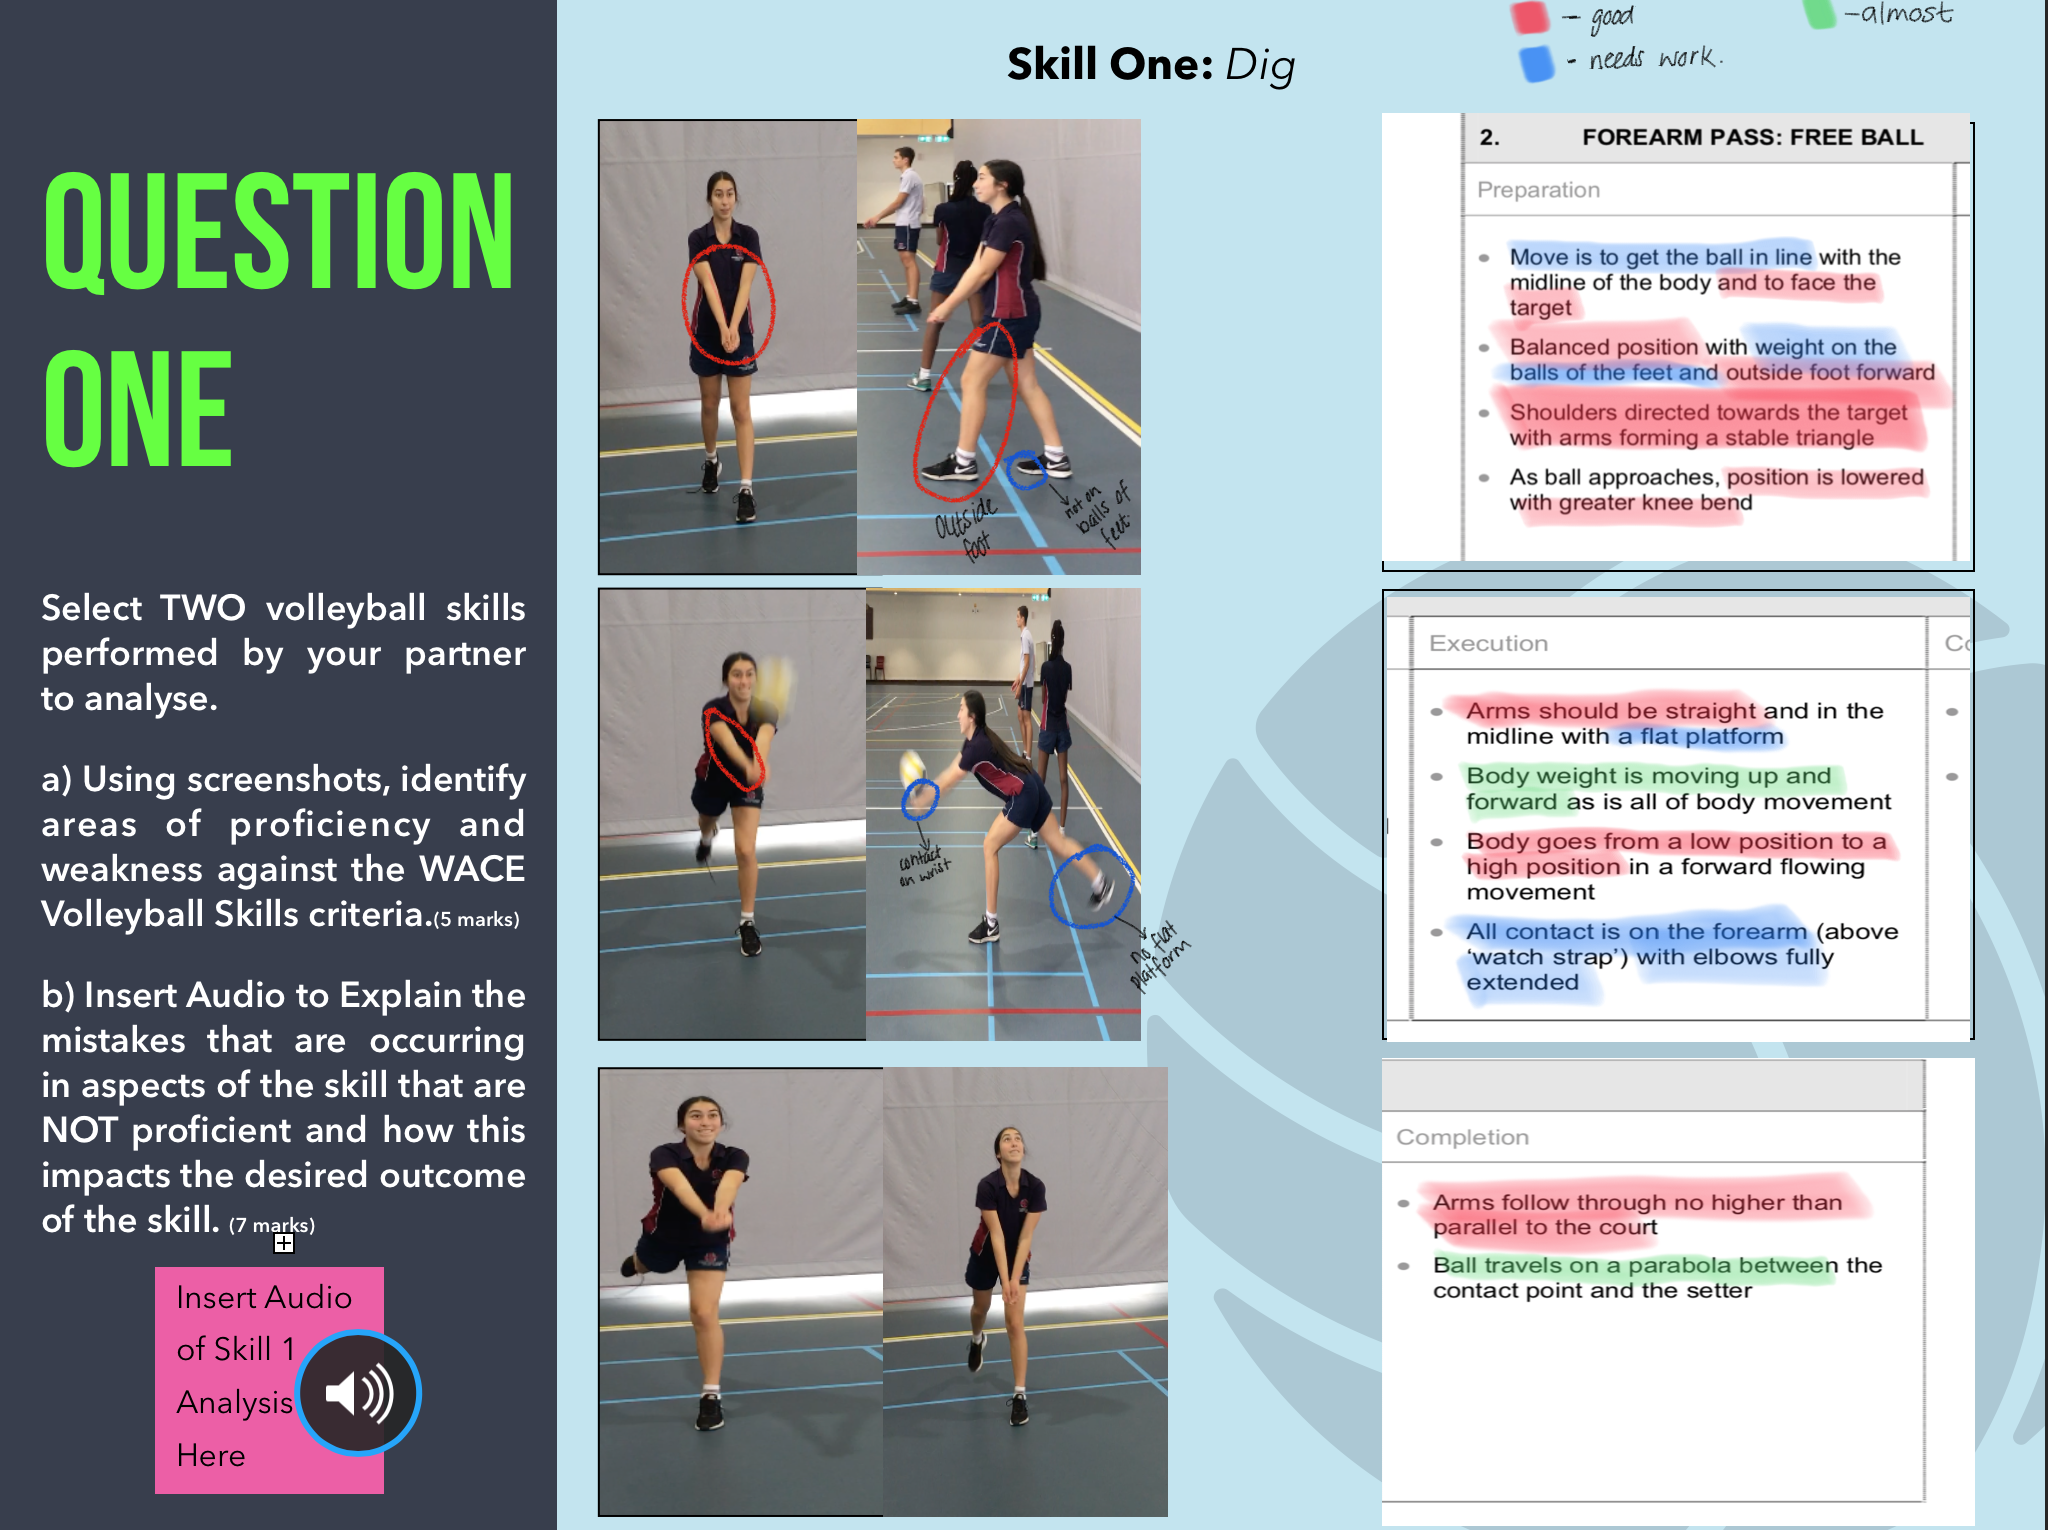 Student analysis of volleyball skills using annotation, photography and audio.